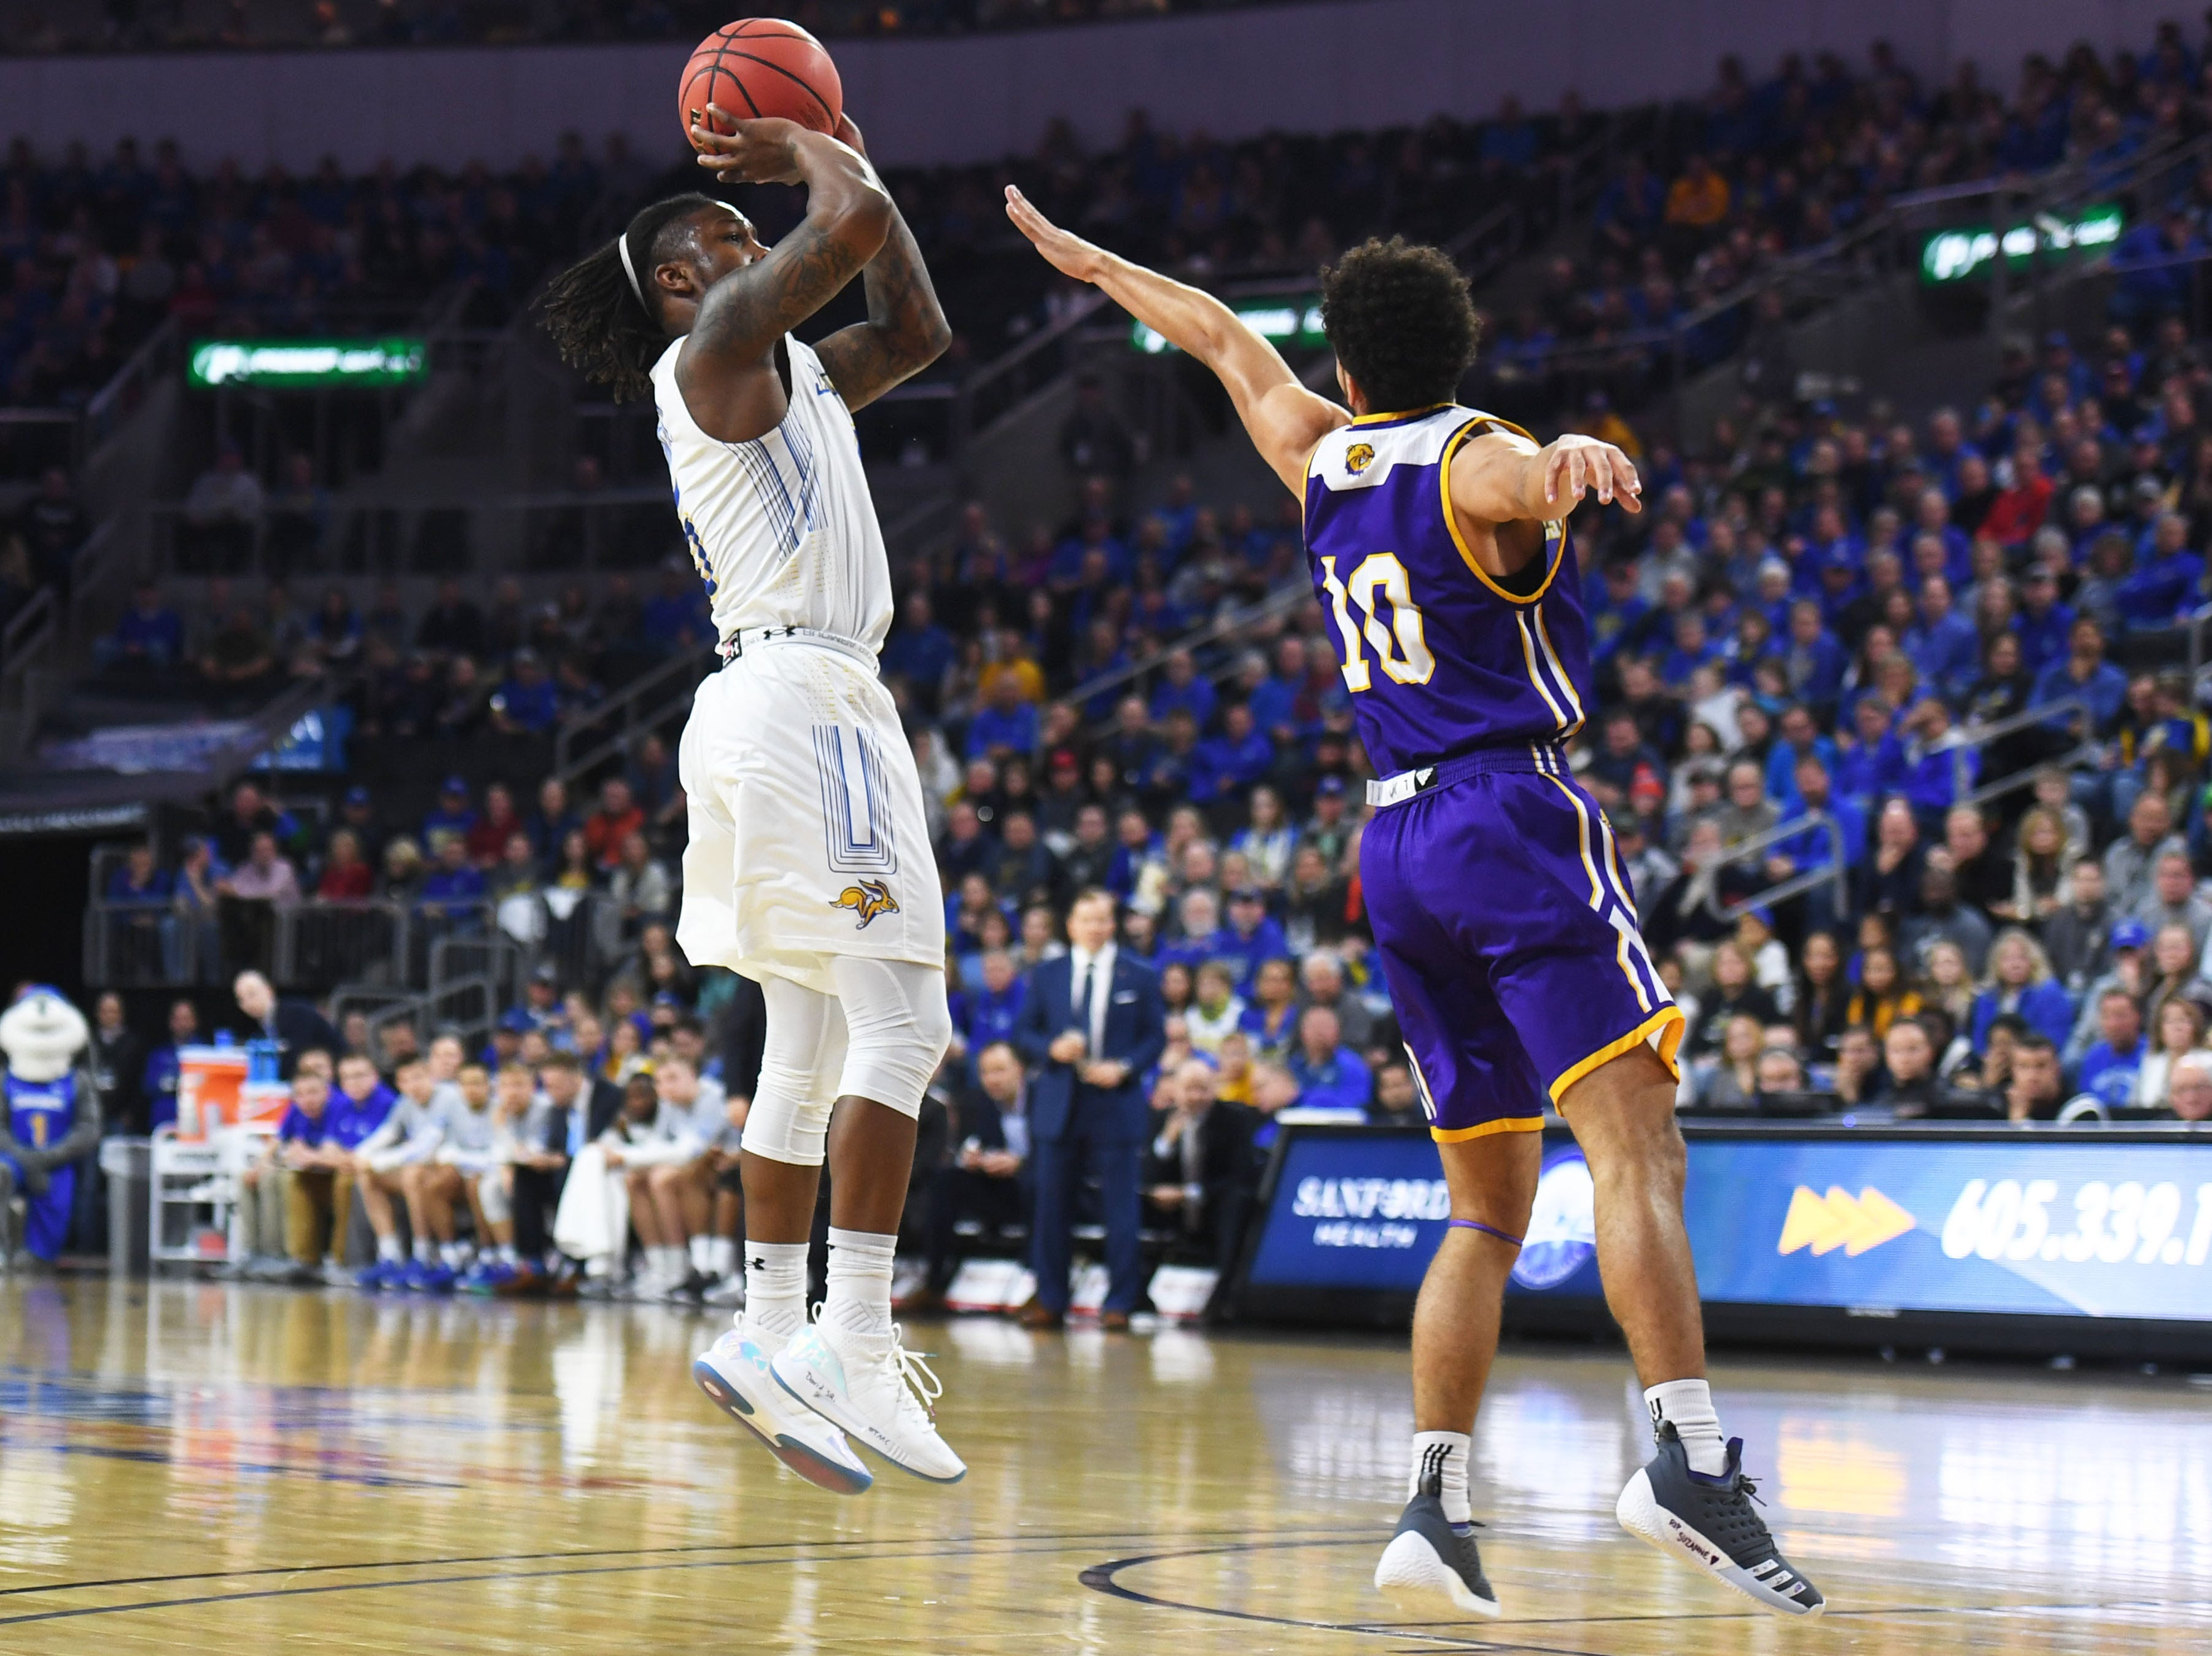 SDSU's David Jenkins takes a shot against Western Illinois Saturday, March 9, in the Summit League tournament at the Denny Sanford Premier Center in Sioux Falls.